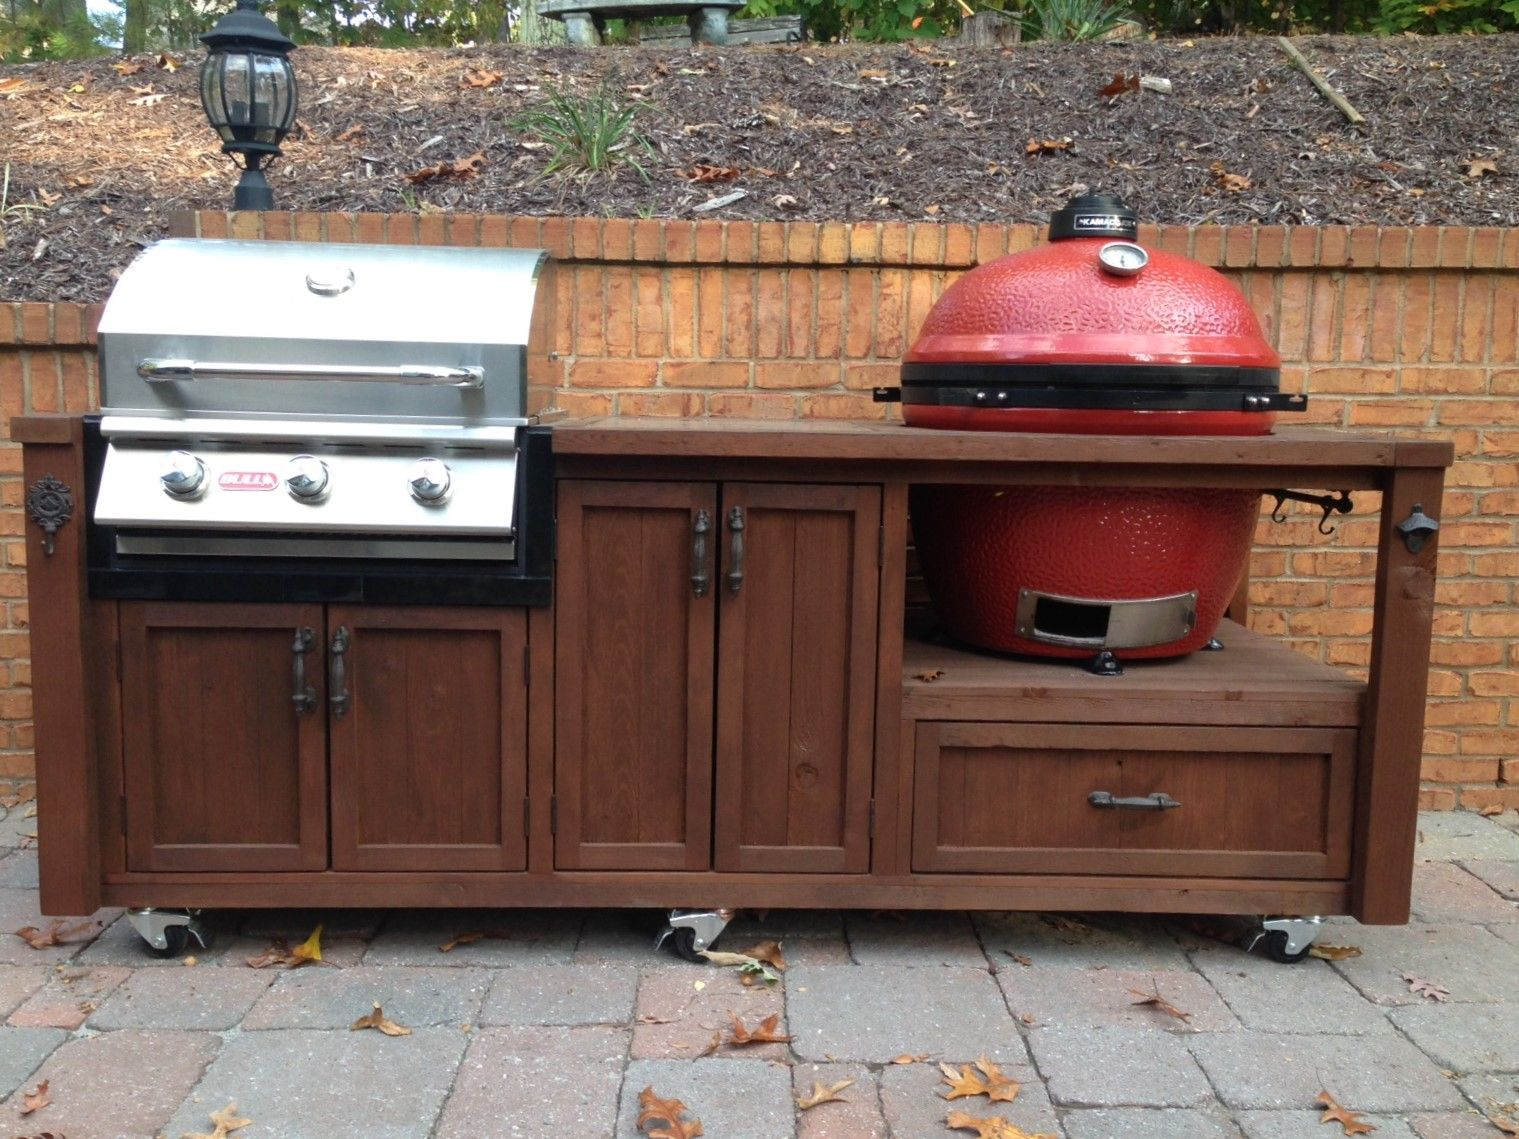 Mobile Outdoor Grill Island For Your Kamado And Gas Grill Grill Table Outdoor Kitchen Bars Custom Grill